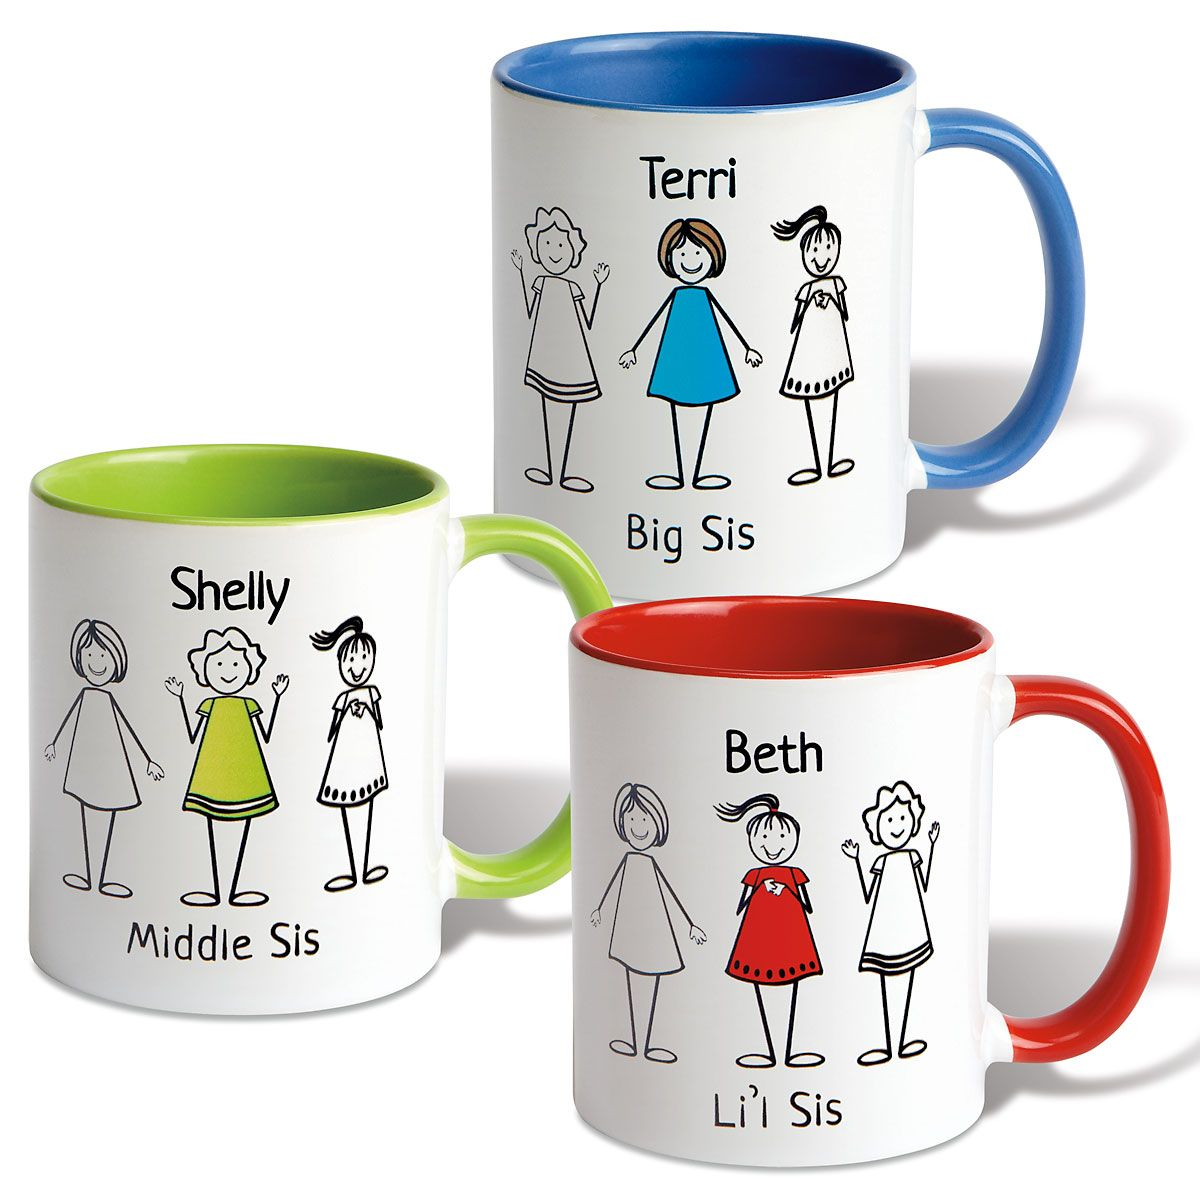 Big/Middle/Li'l Sis Personalized Mug